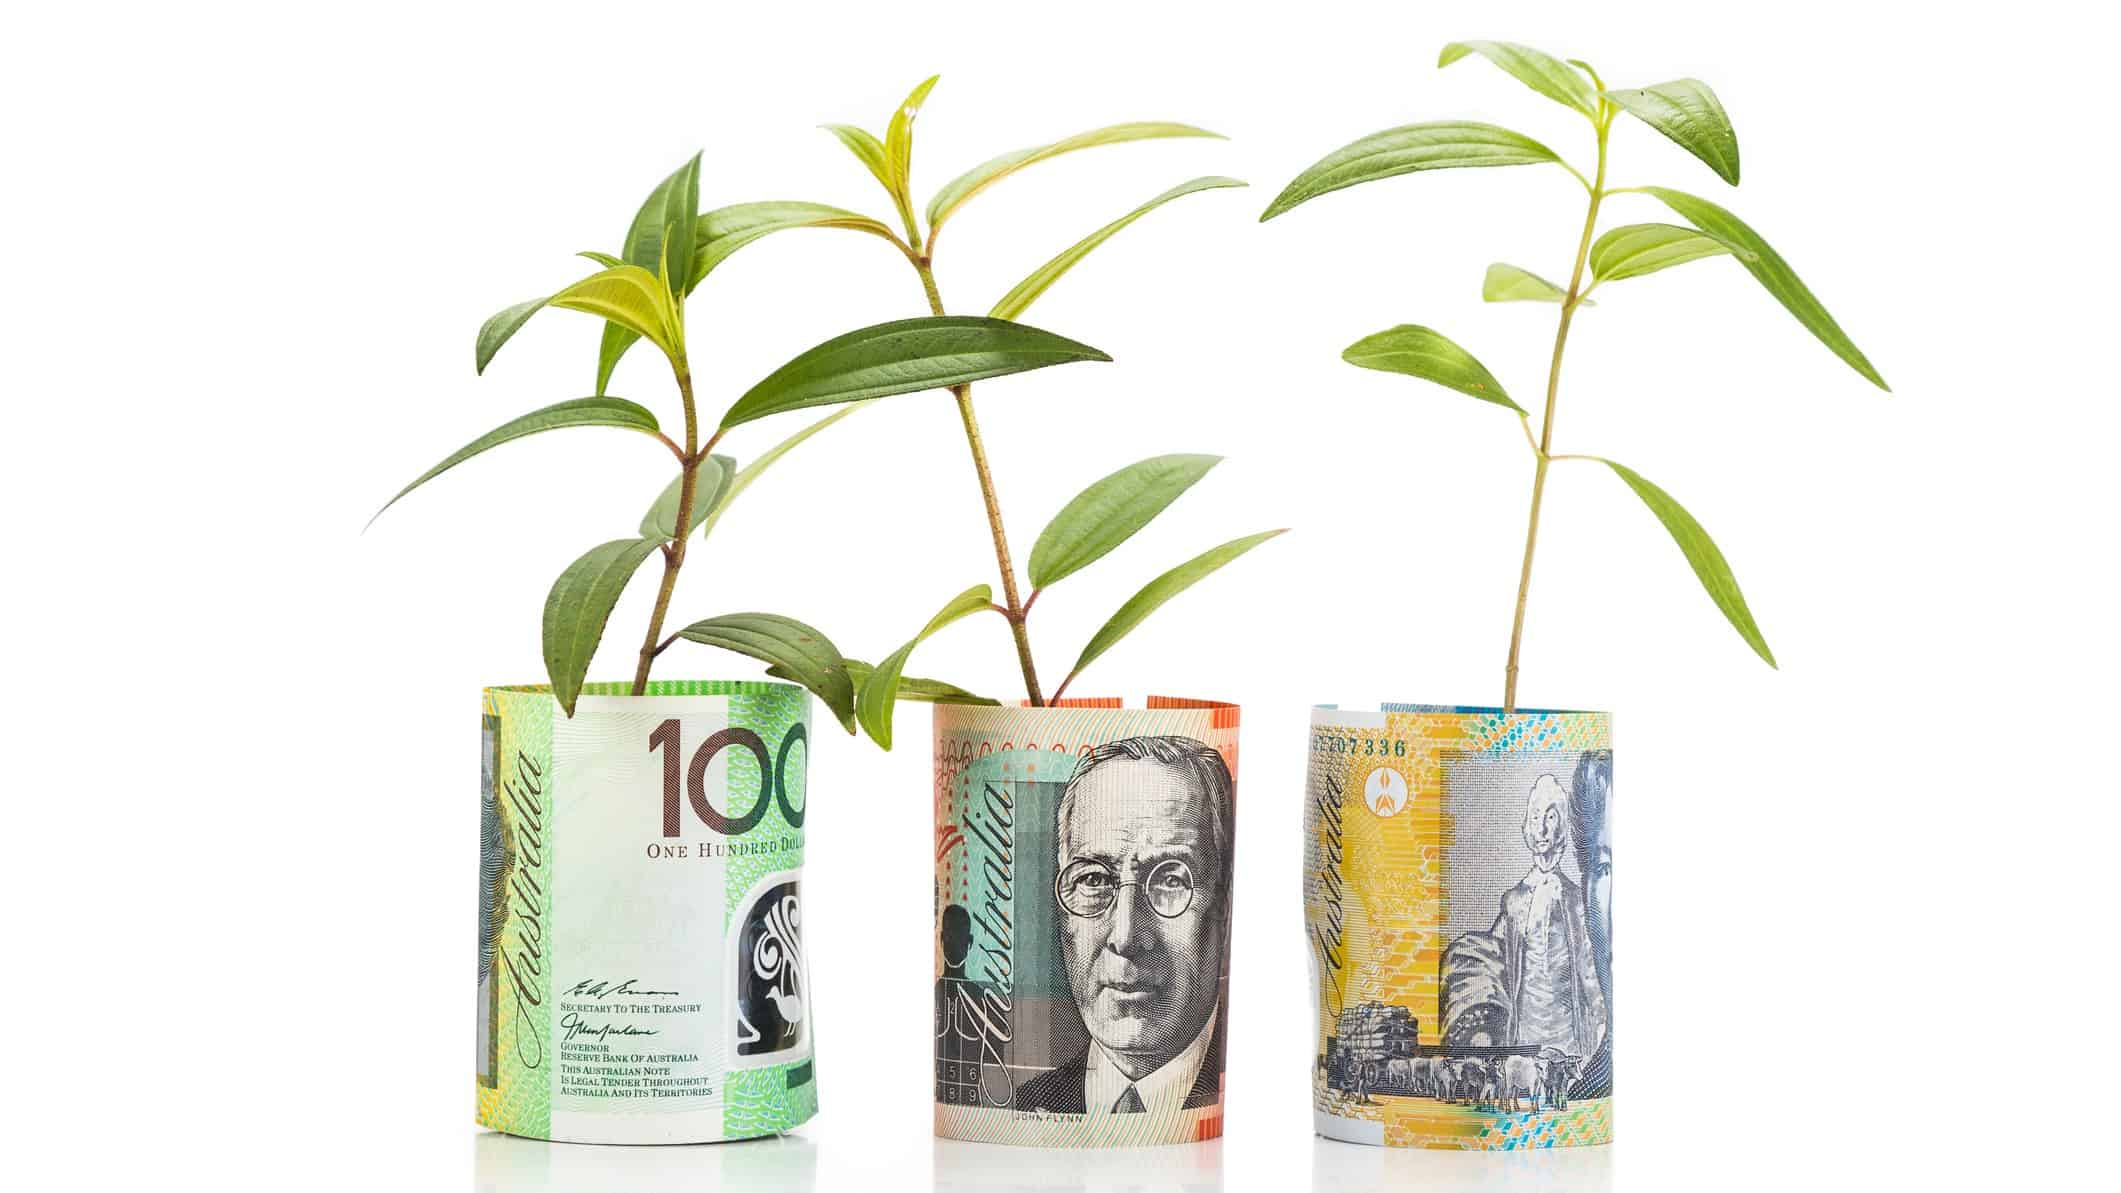 seedling plants growing out of rolls of money representing dividend shares